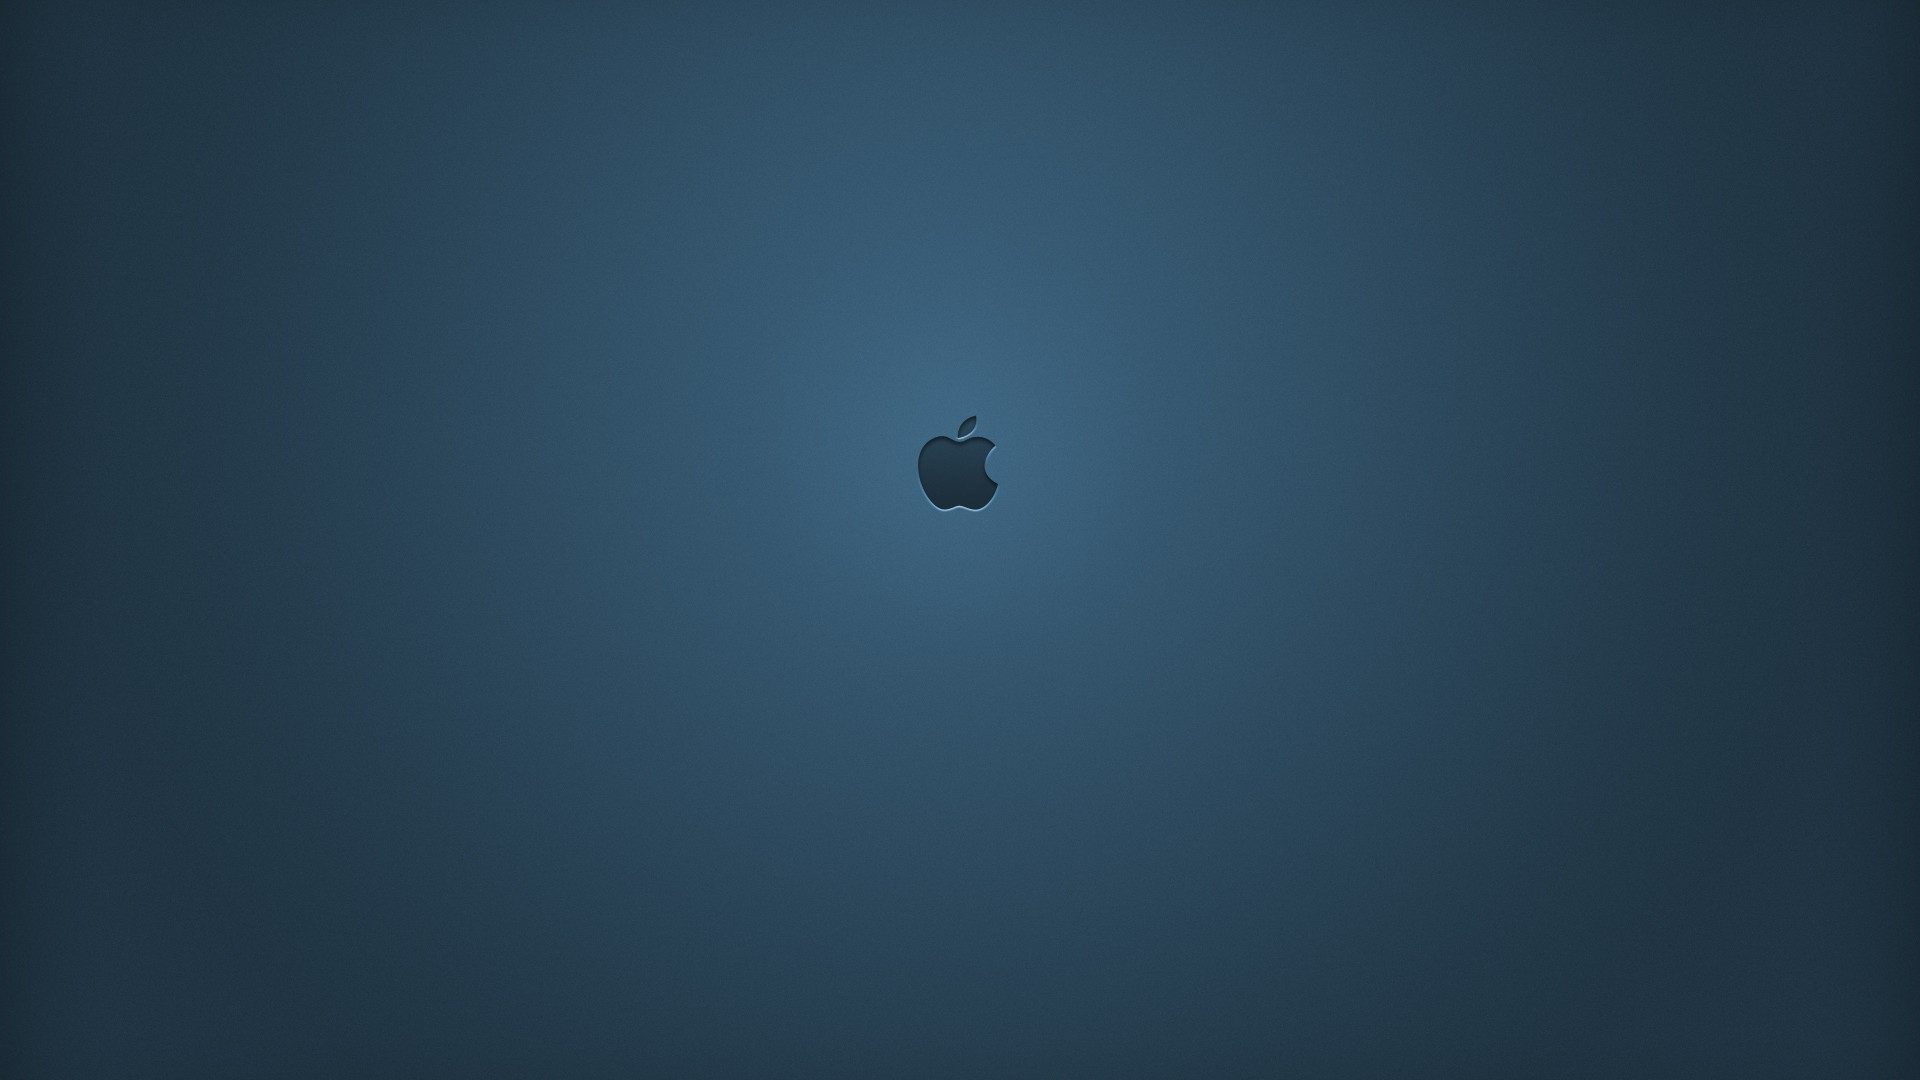 1920x1080 Minimal Apple Wallpaper